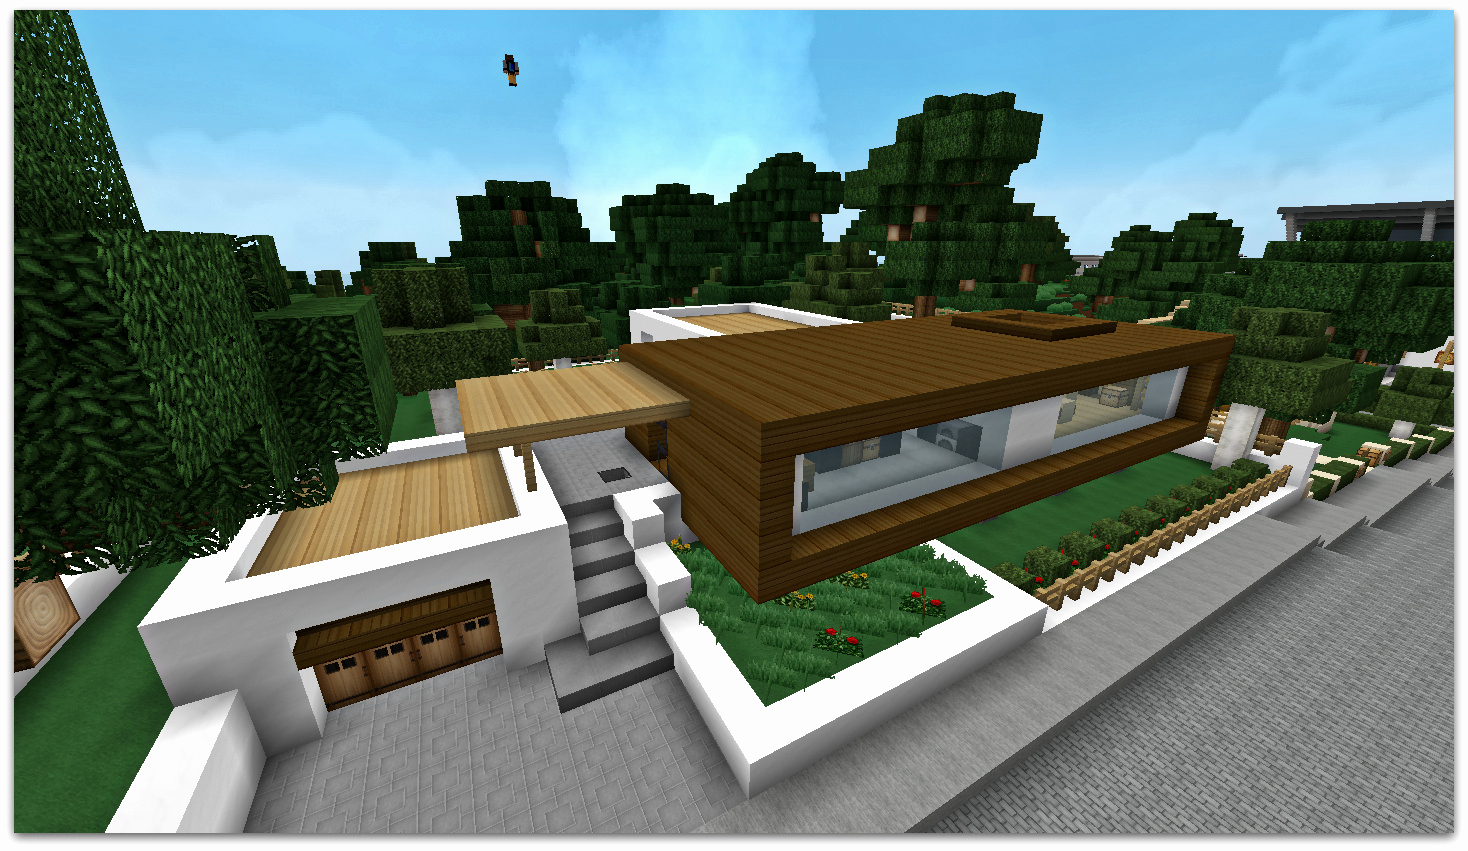 Meuble Moderne Minecraft Luxe Collection Cuisine Moderne Minecraft Impressionnant Beautiful Ment Faire Une